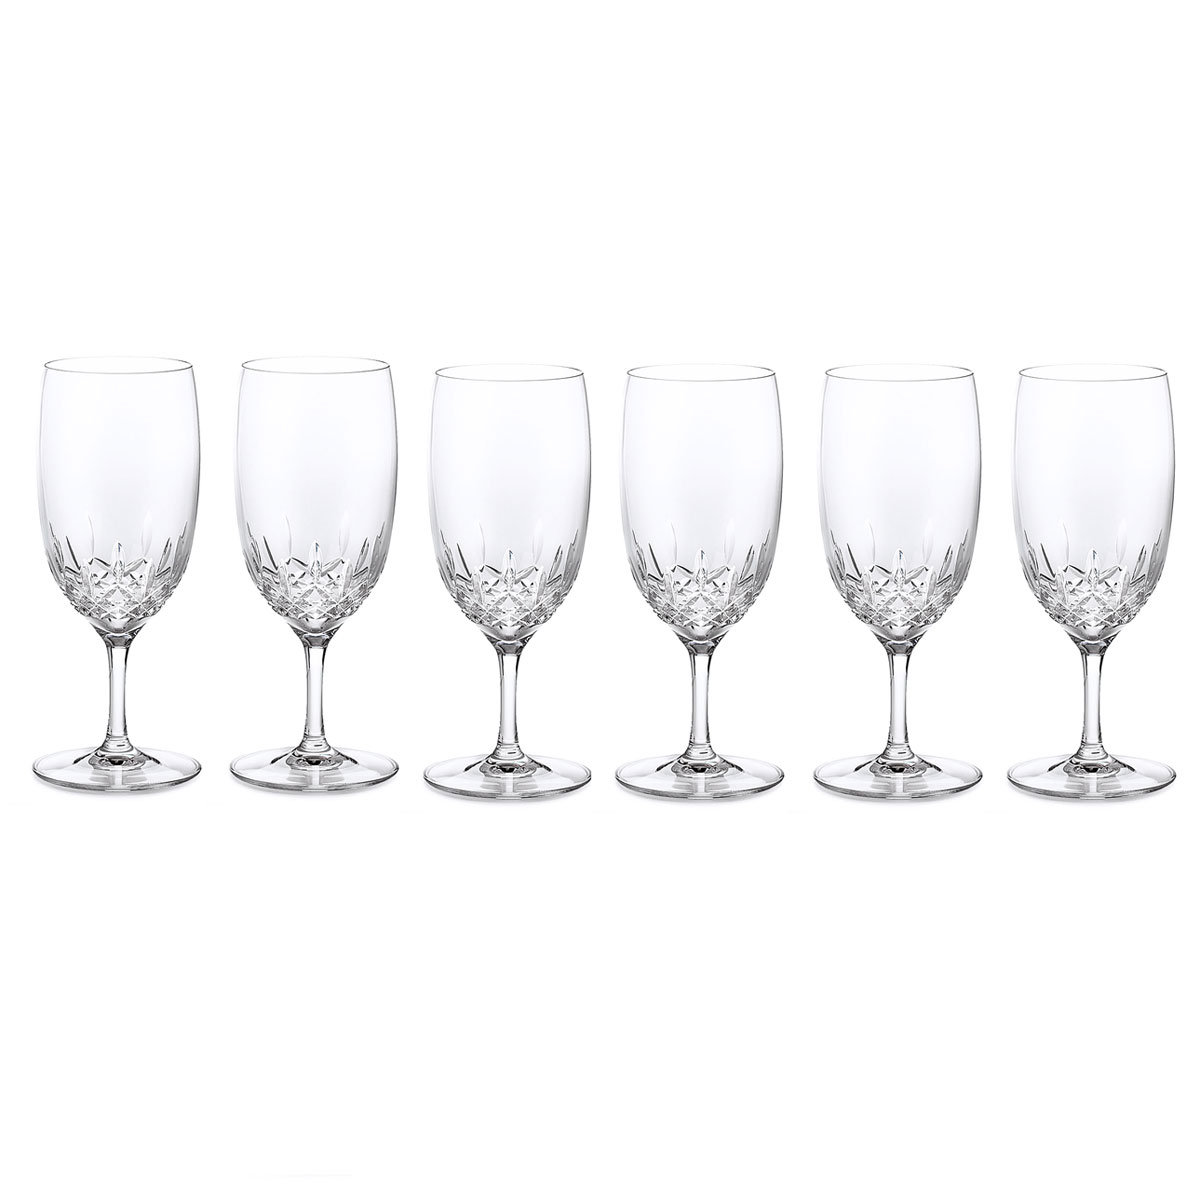 Waterford Crystal, Lismore Essence Iced Beverage, Boxed Set 5+1 Free